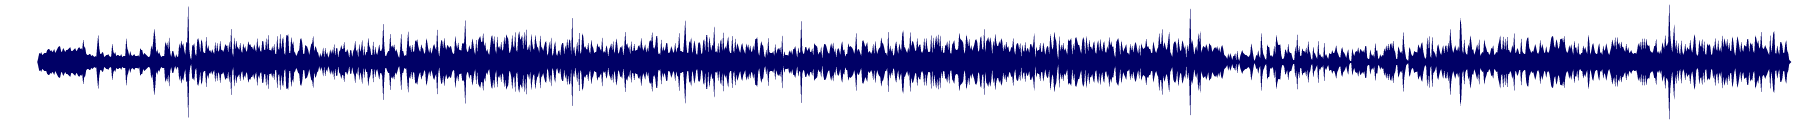 waveform of track #69293